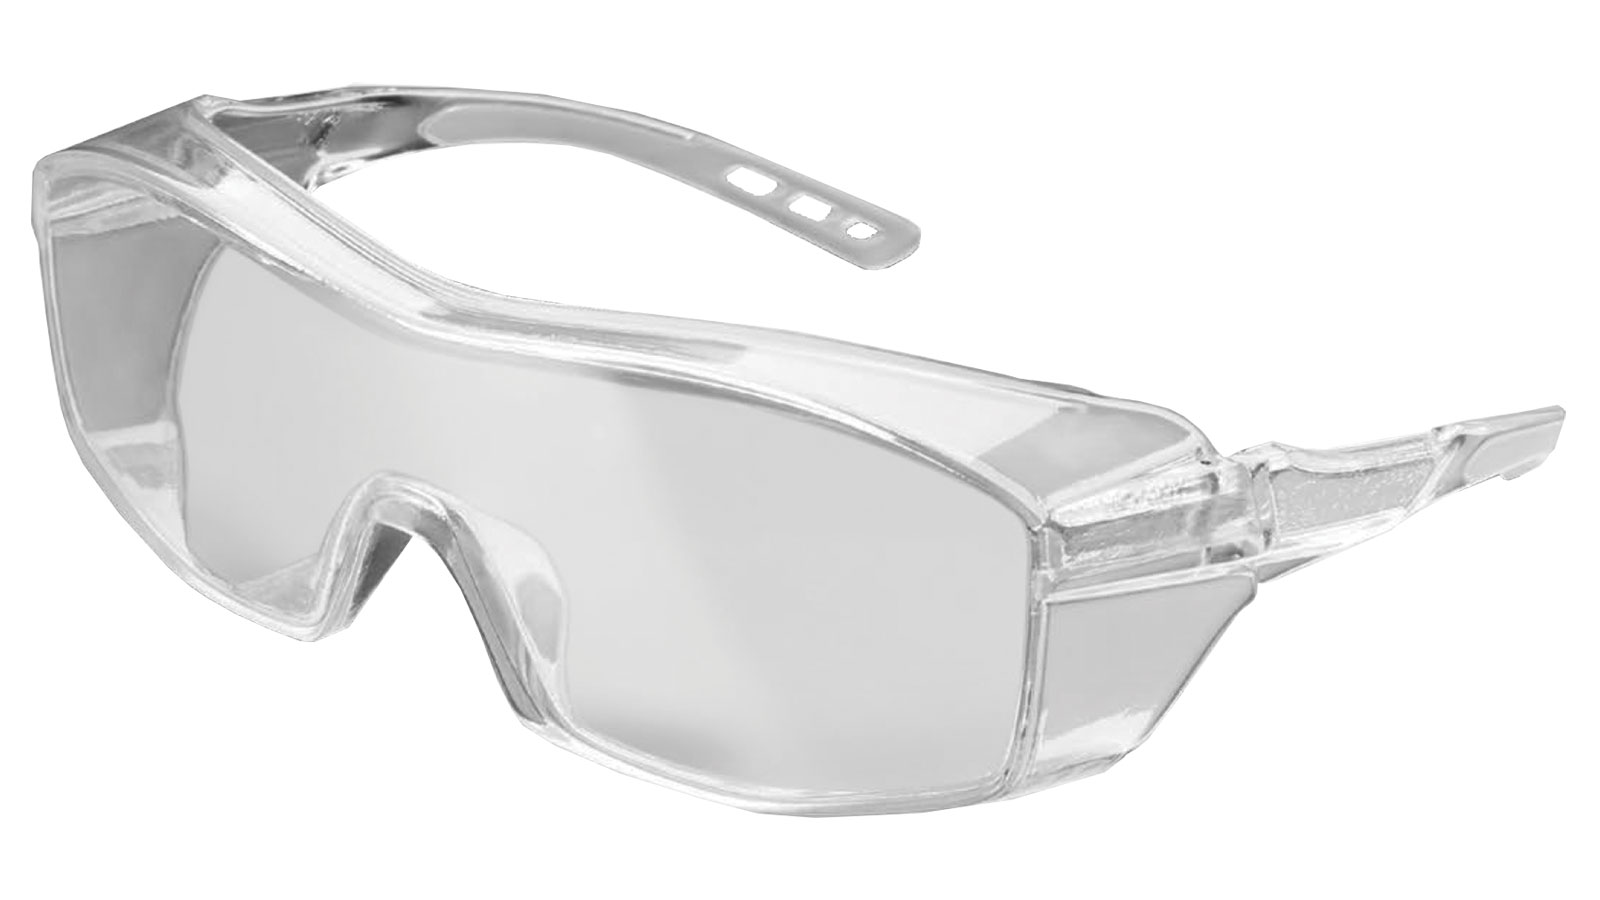 Peltor™ Sport Over-the-Glass Eyewear